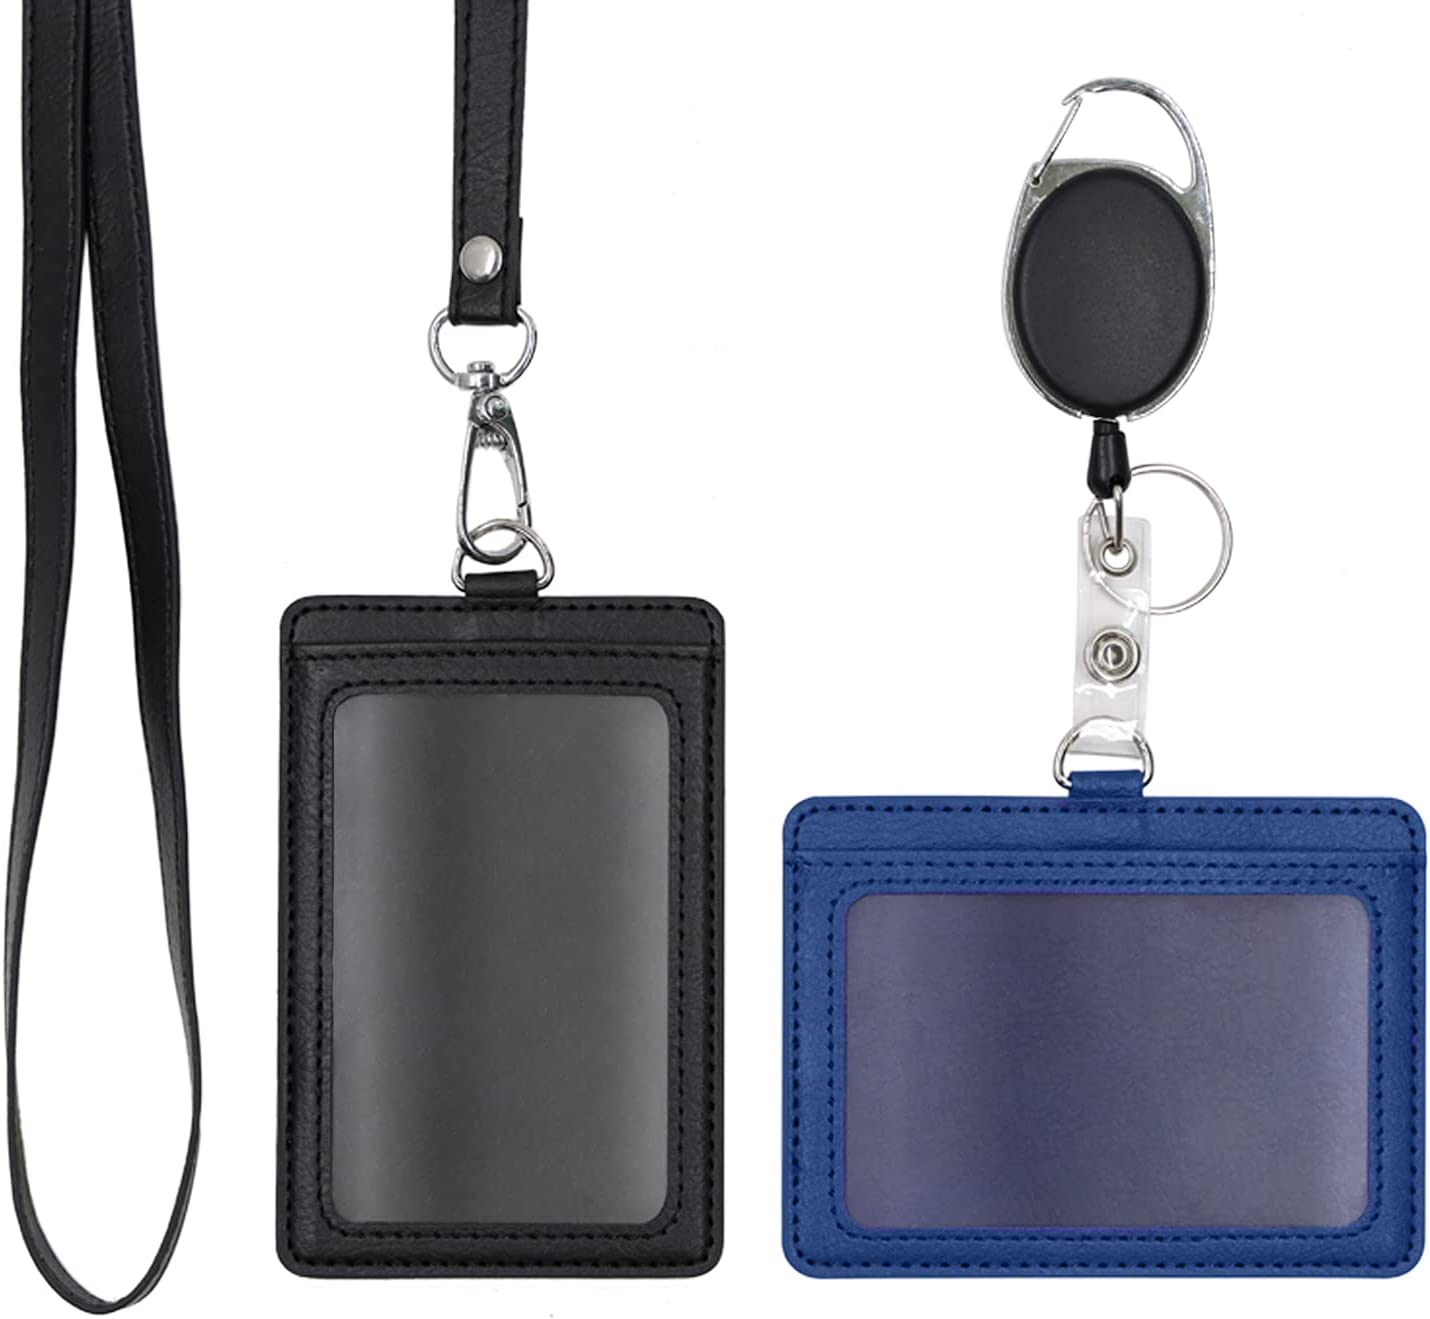 Melsbrinna 2 Pack Badge Holders Heavy Max 57% OFF Sales for sale Hol Duty Retractable